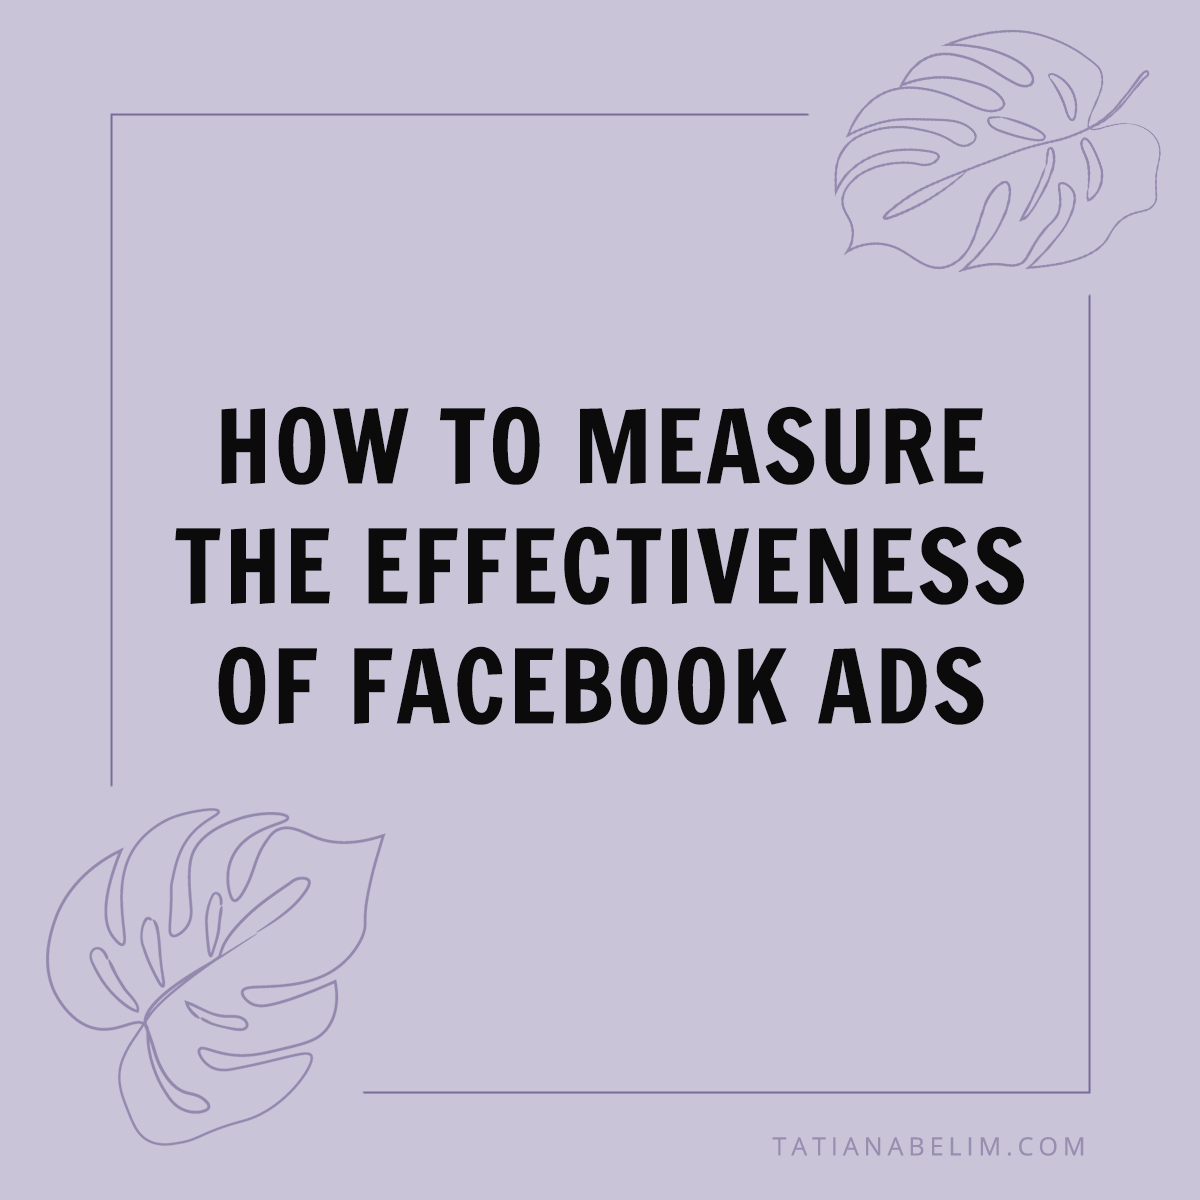 How-To-Measure-The-Effectiveness-of-Facebook-Ads